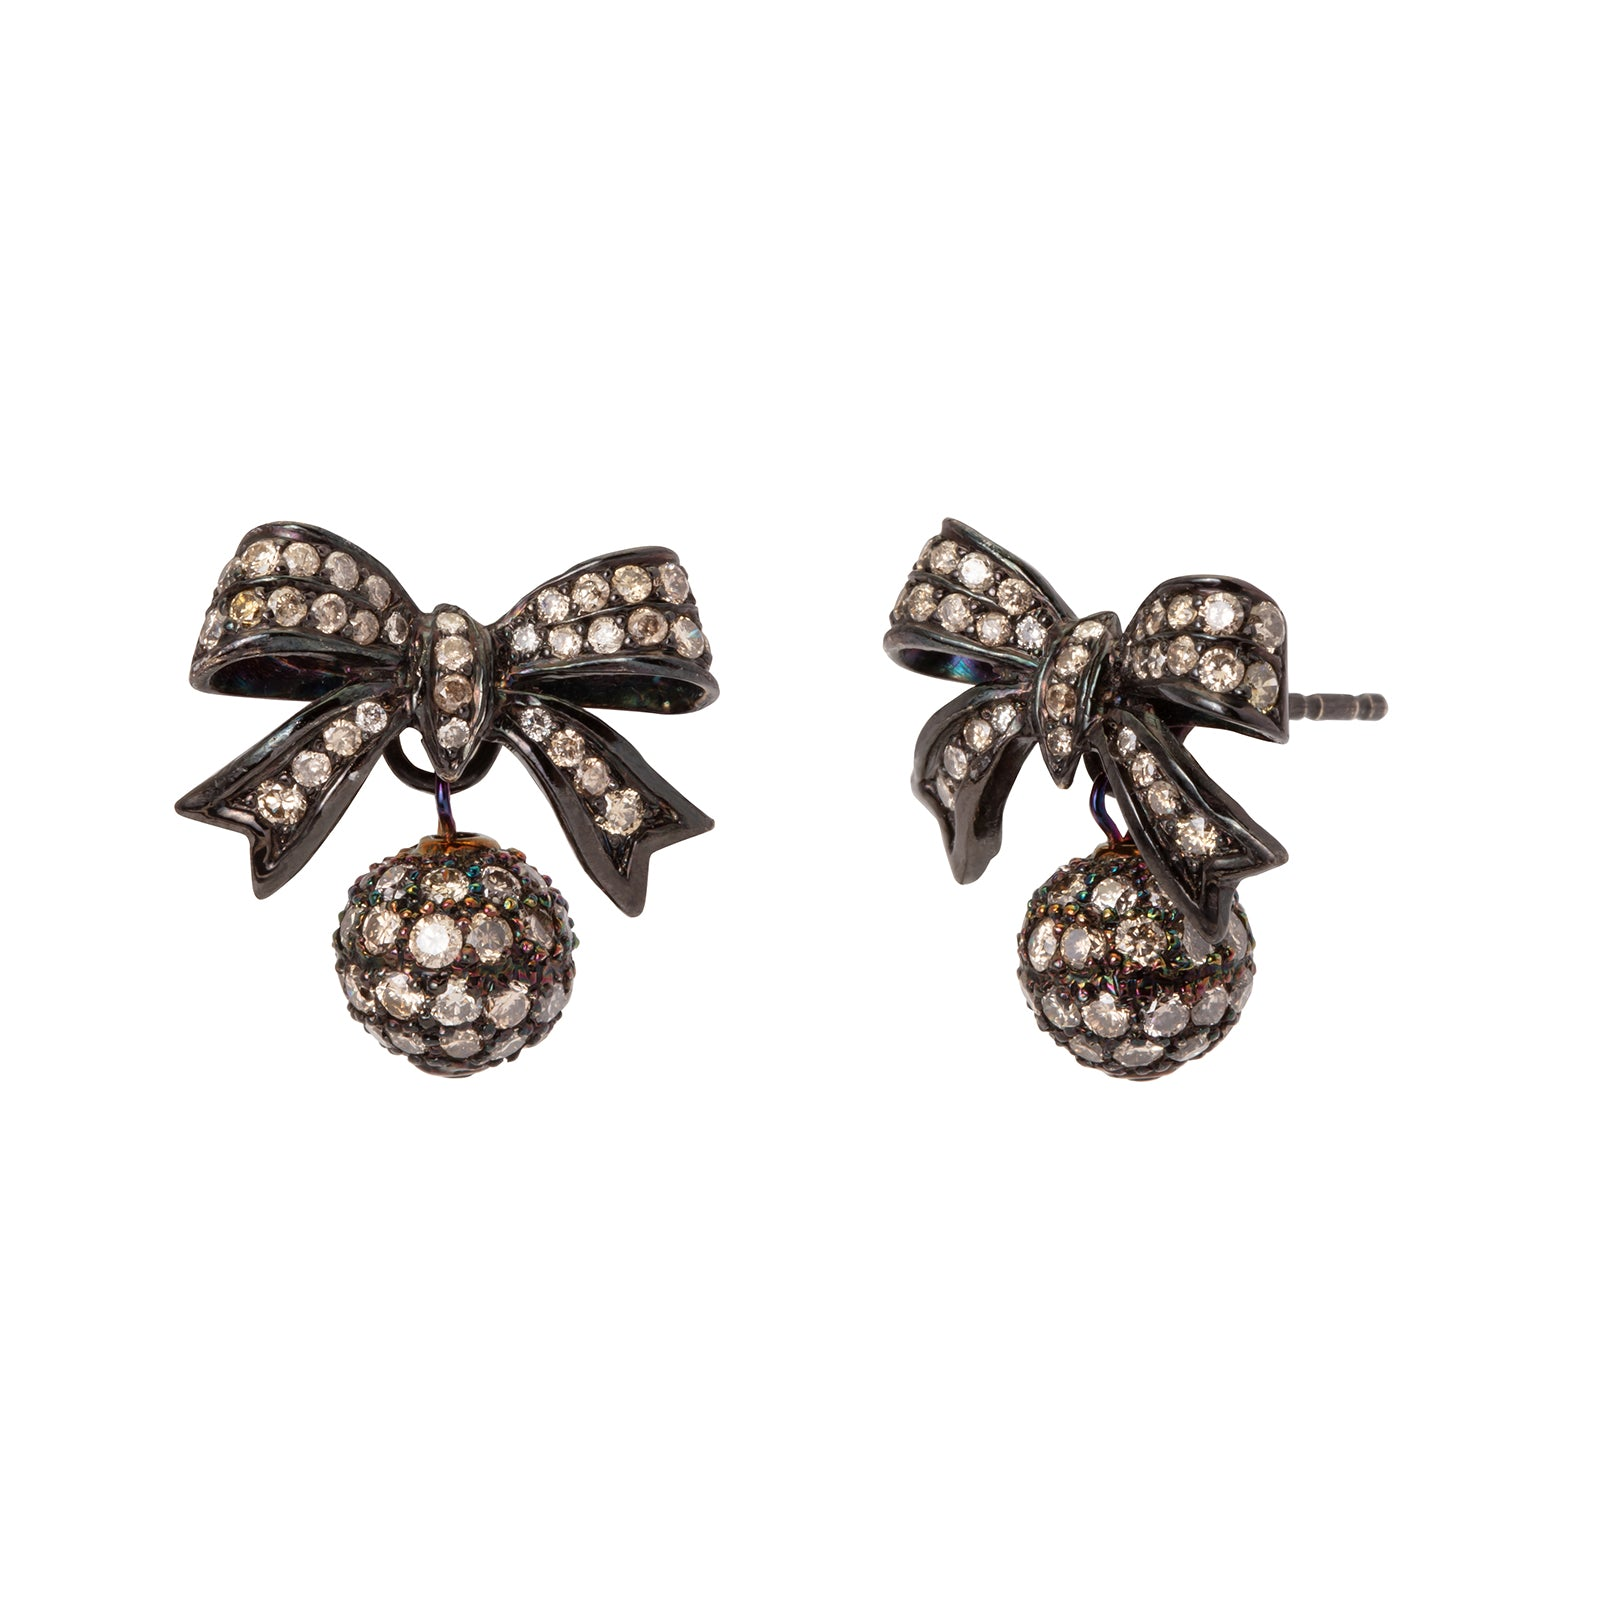 Colette Party Bow Earrings - Earrings - Broken English Jewelry